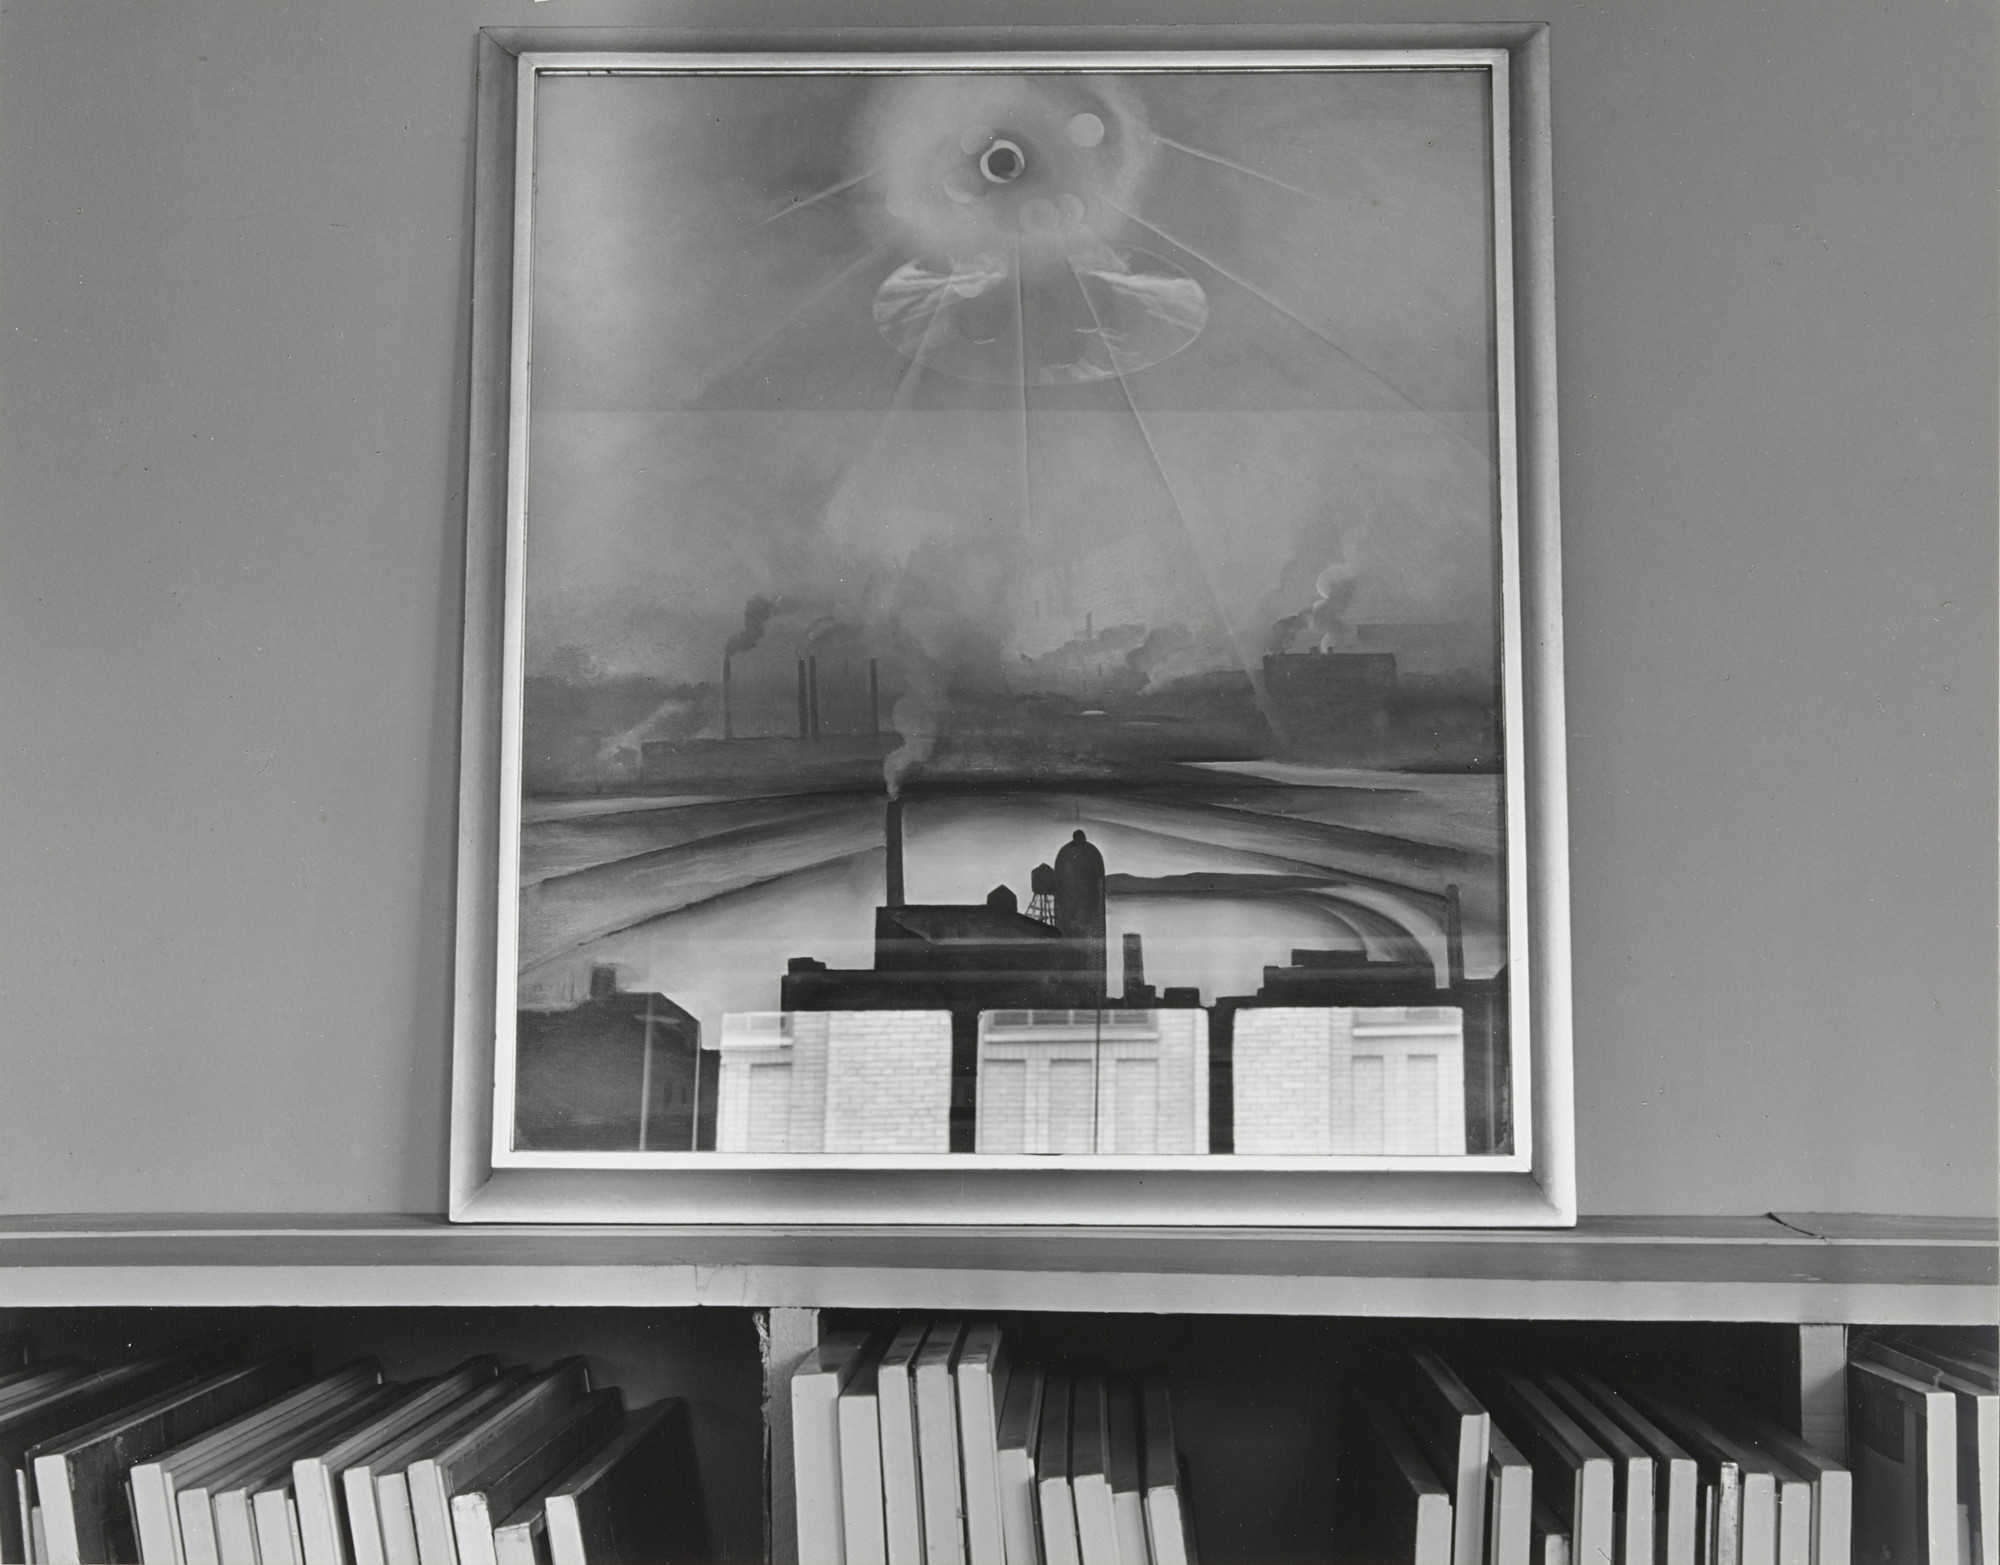 Ansel Adams. An American Place, O'Keeffe Painting, Reflections. c. 1938